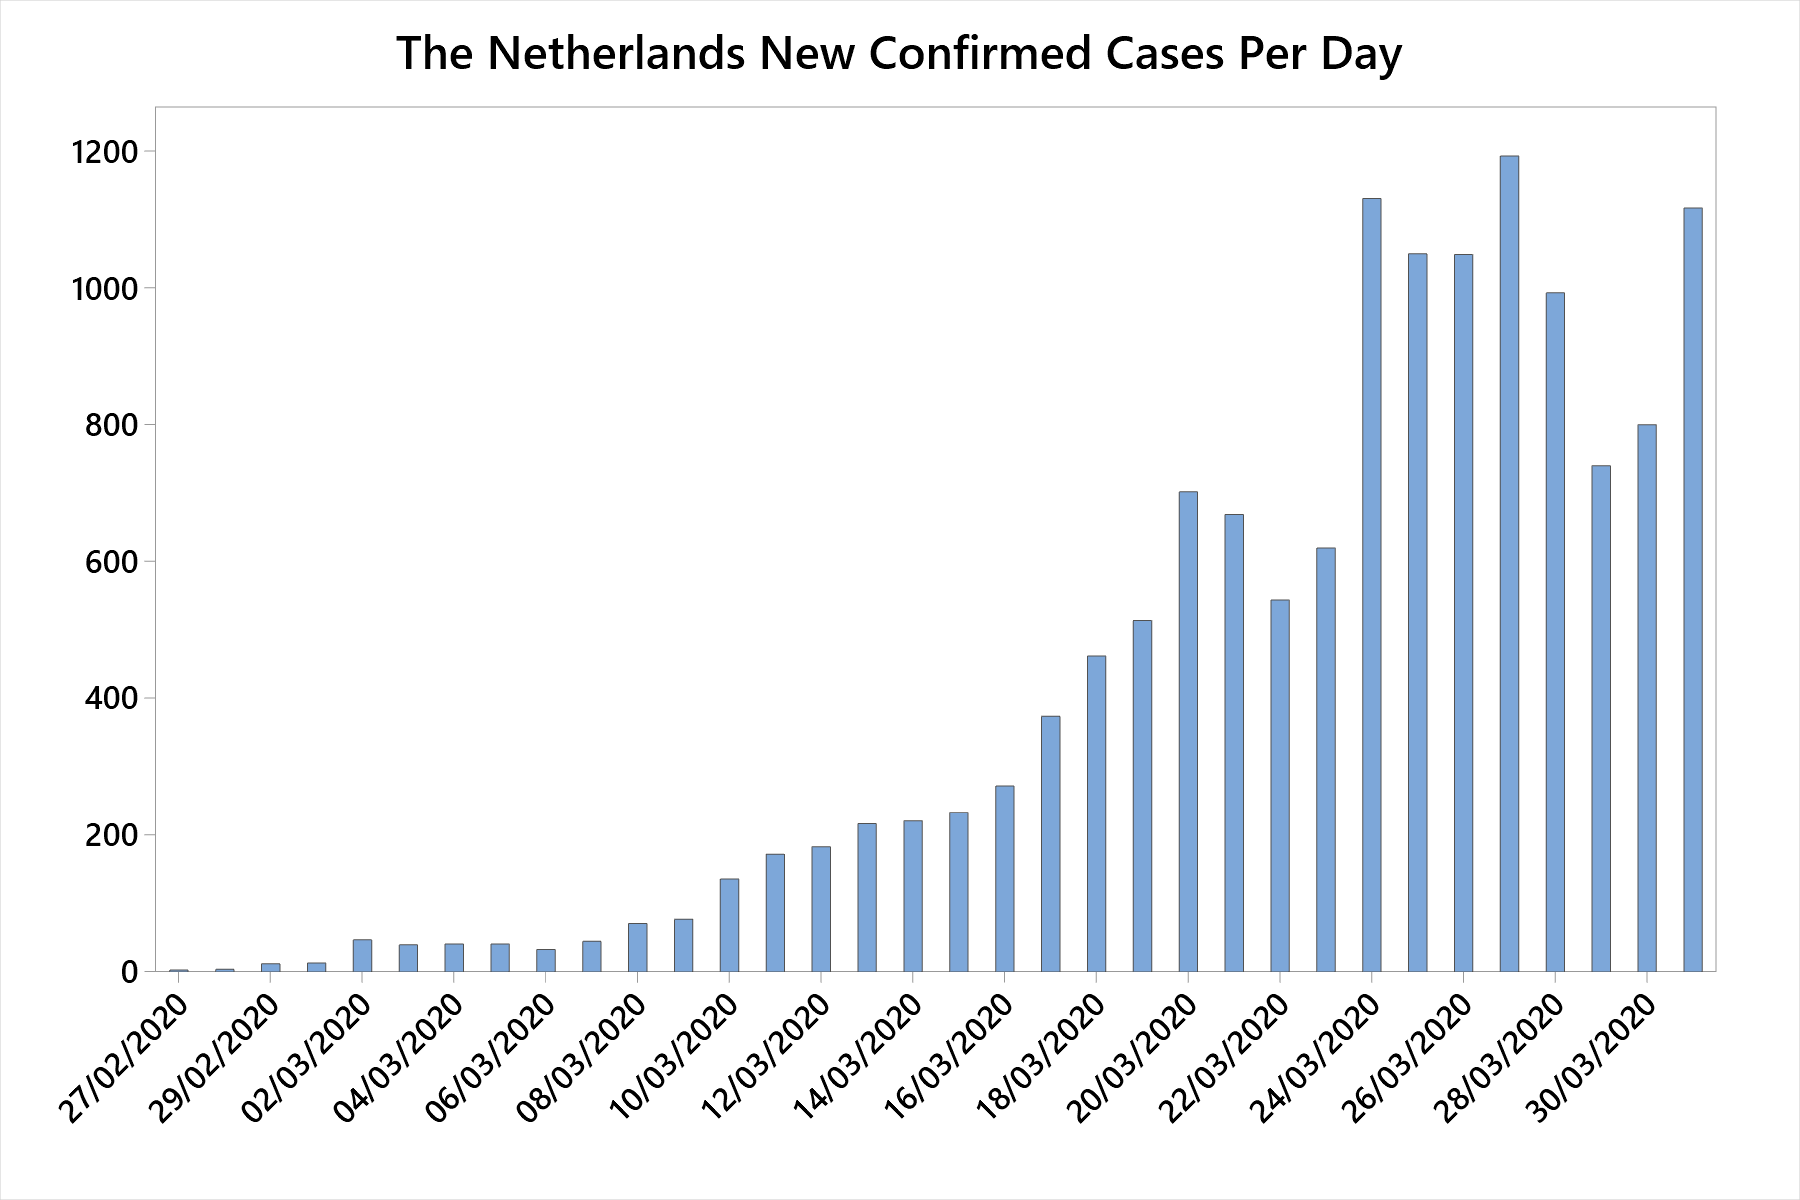 Graph of The Netherlands new coronavirus cases by day.